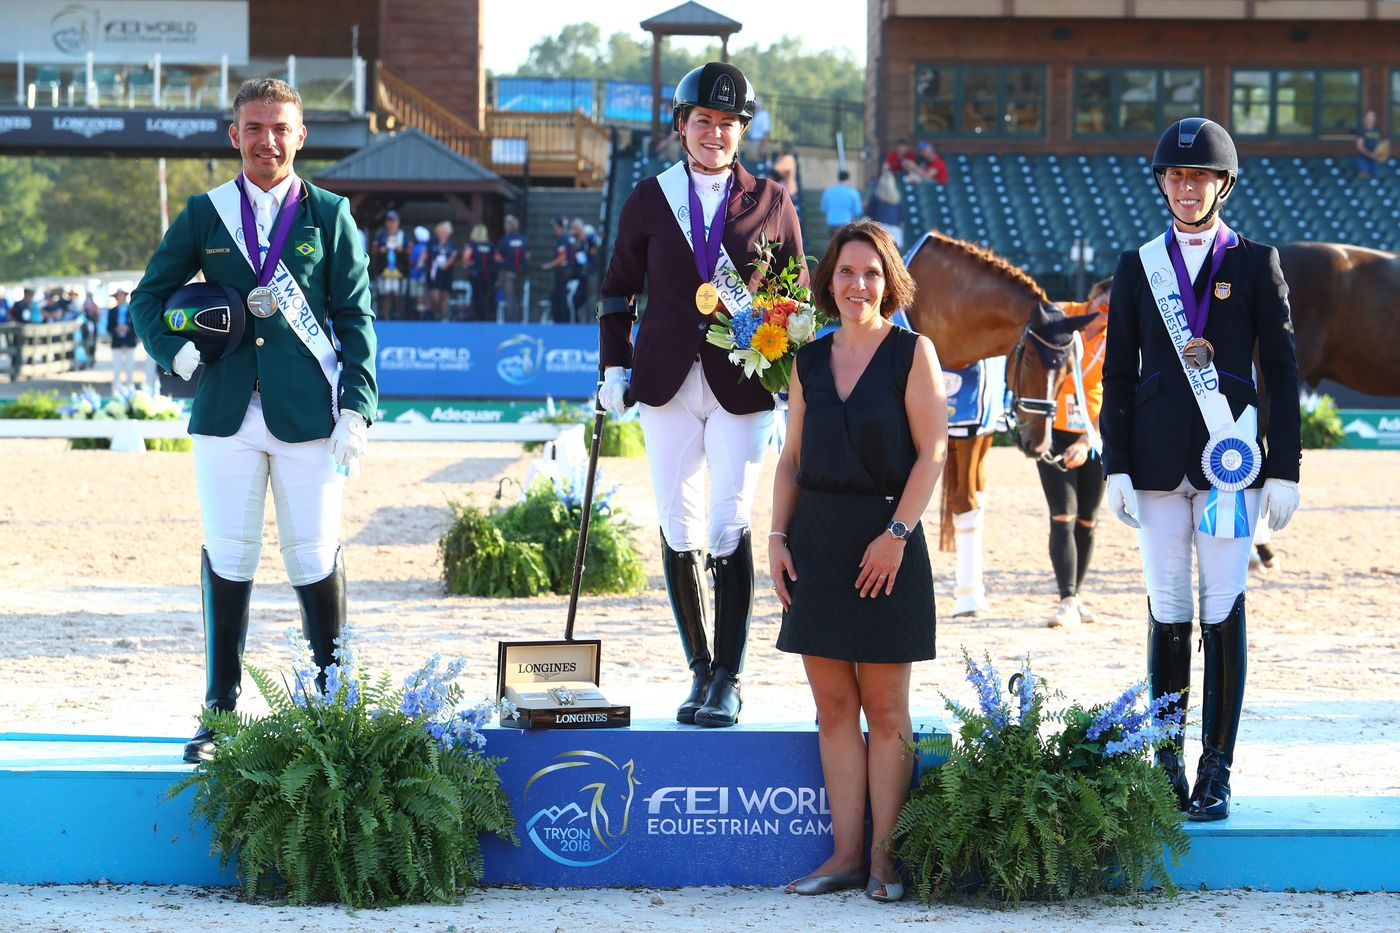 Longines Show Jumping Event: The FEI World Equestrian Games ended beautifully with Germany topping the medal table   6